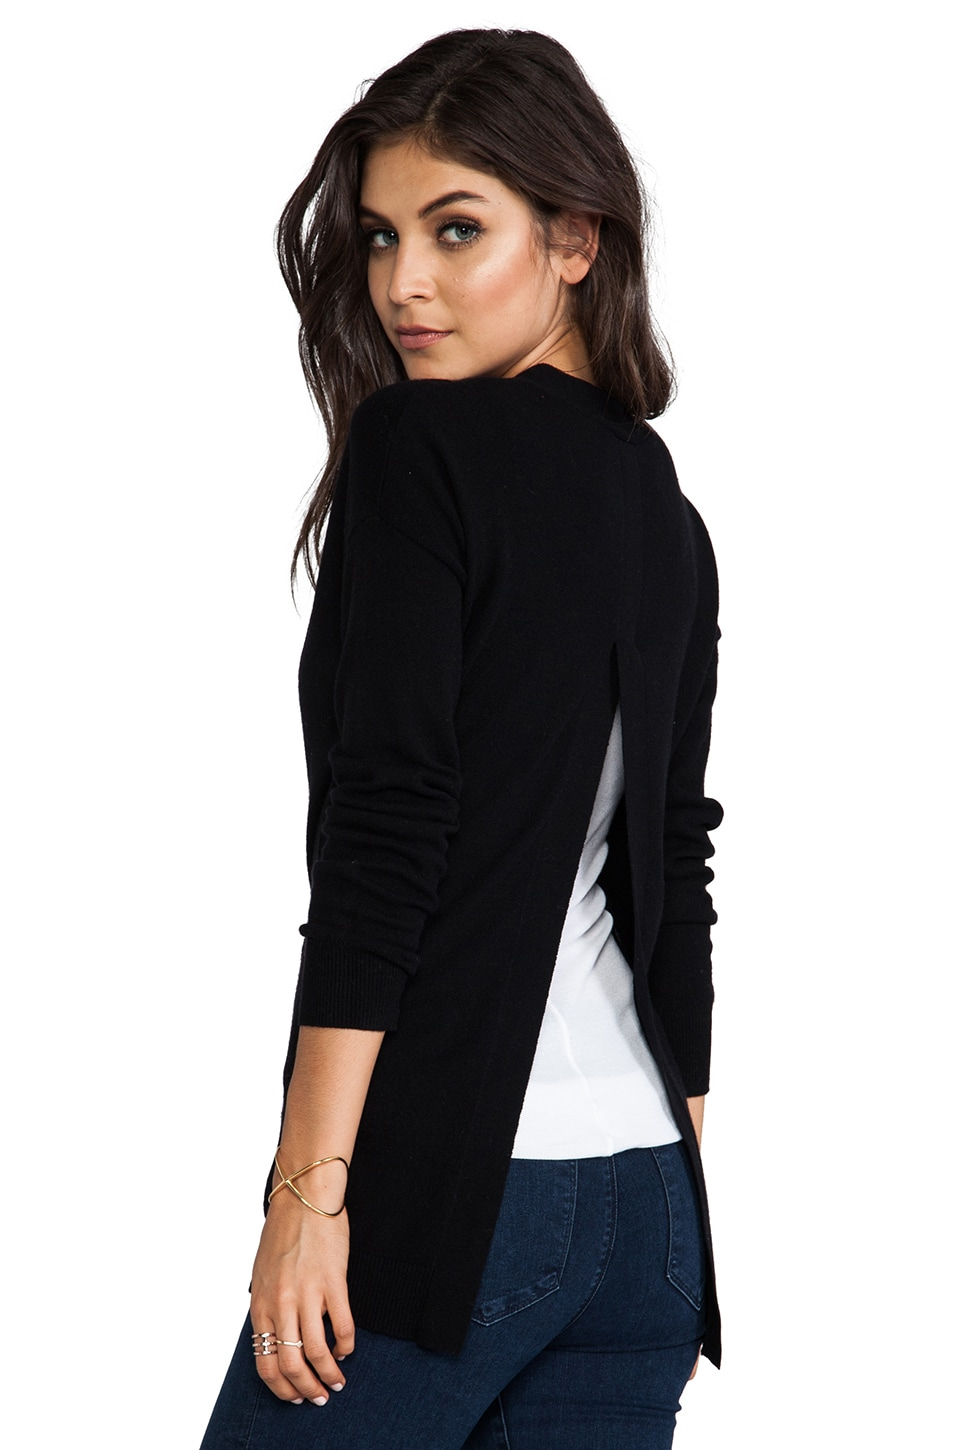 Autumn Cashmere Hi Lo Open Back Boyfriend Cardigan in Black